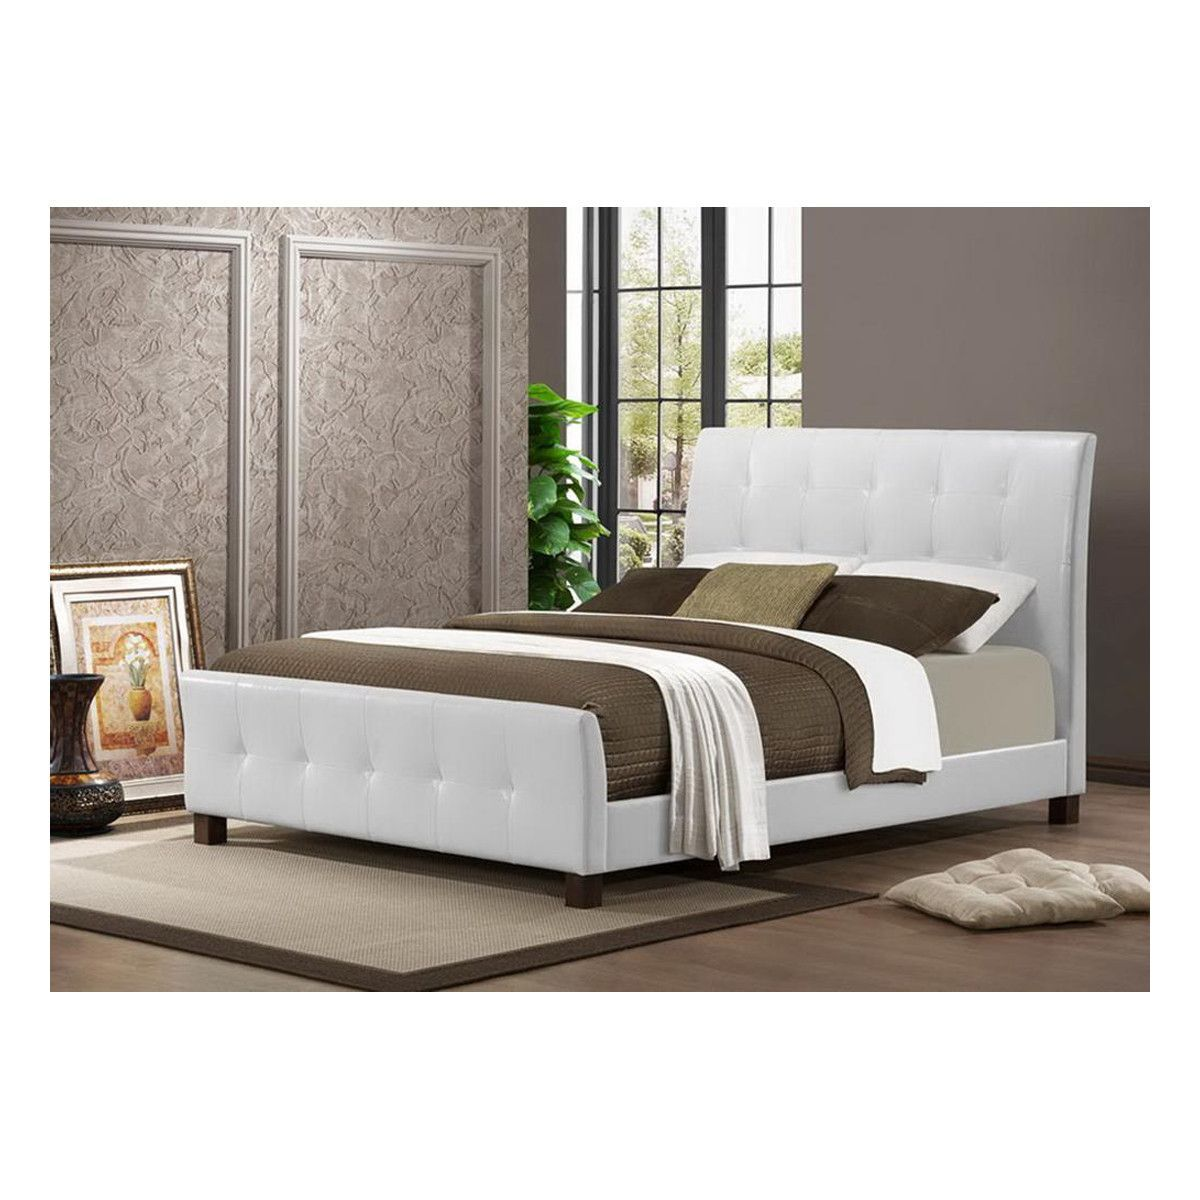 Amara white modern bed bed headboards modern and contemporary